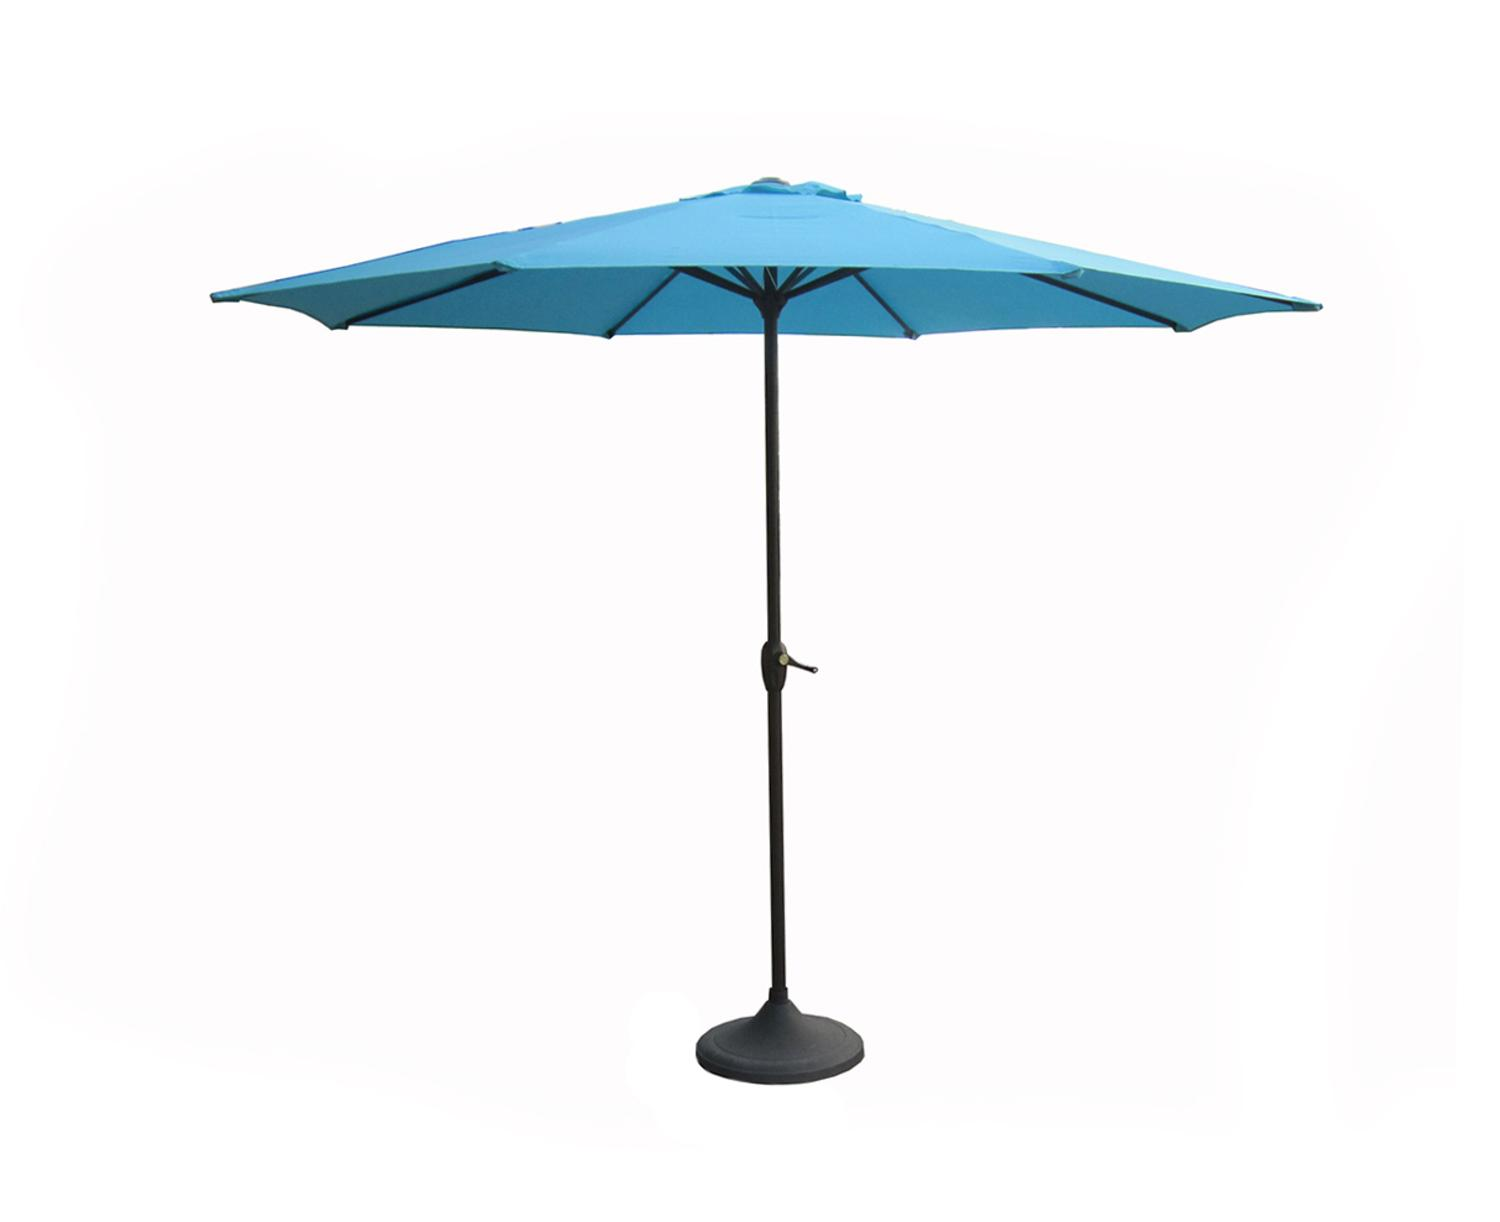 9' Outdoor Patio Market Umbrella with Hand Crank and Tilt Turquoise Teal by LB International